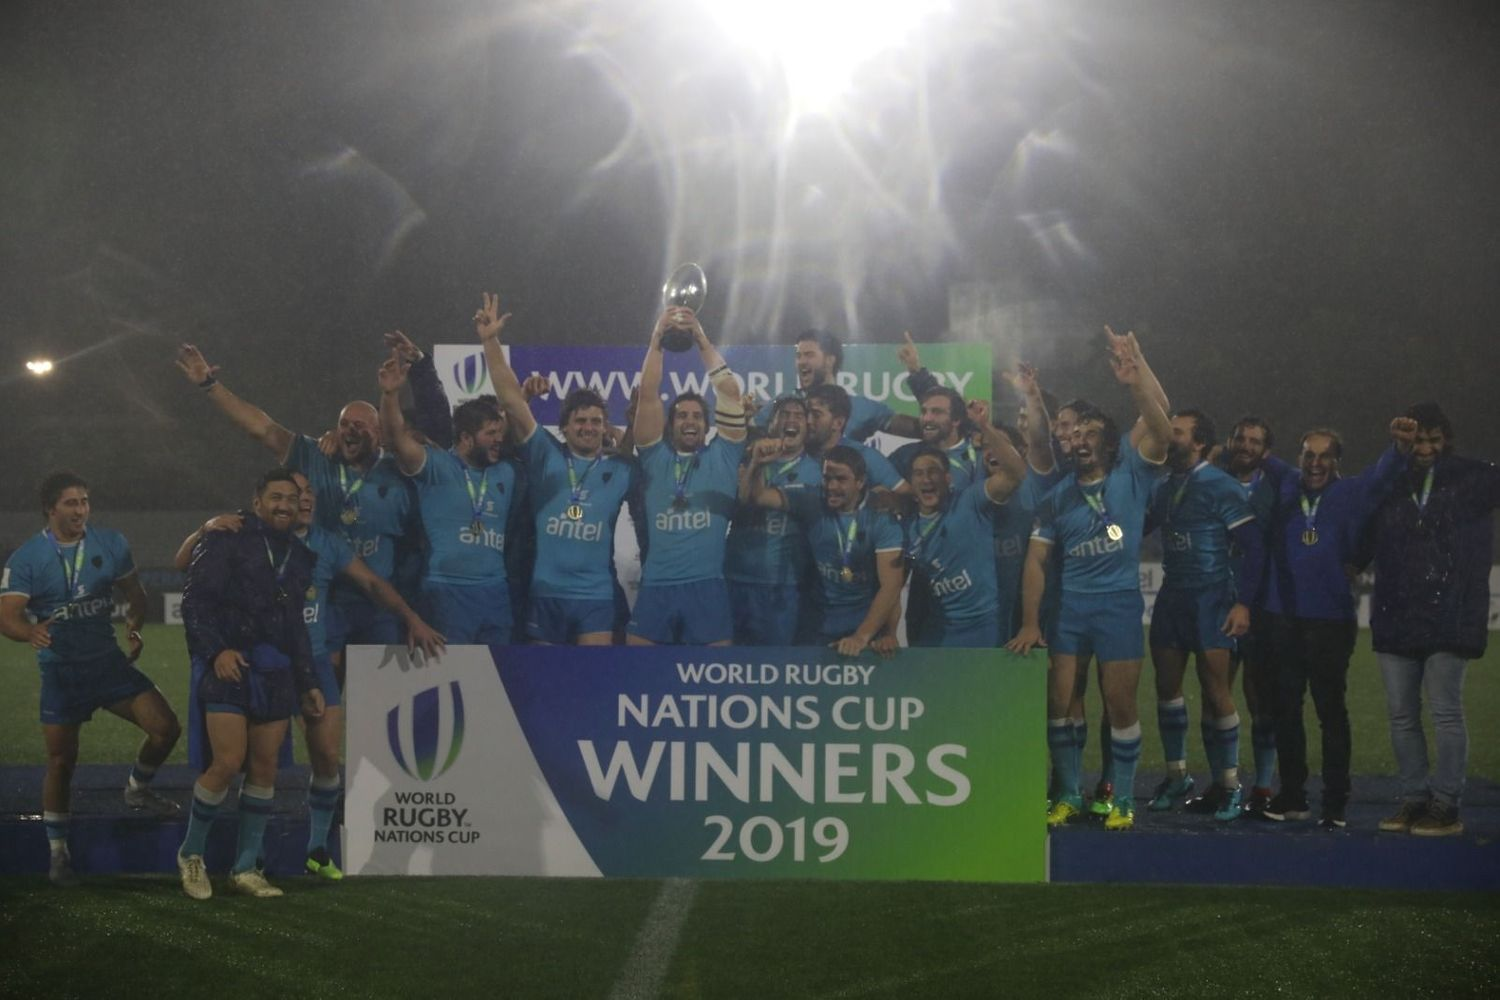 World Rugby Nations Cup 2019 trophy lift: Uruguay